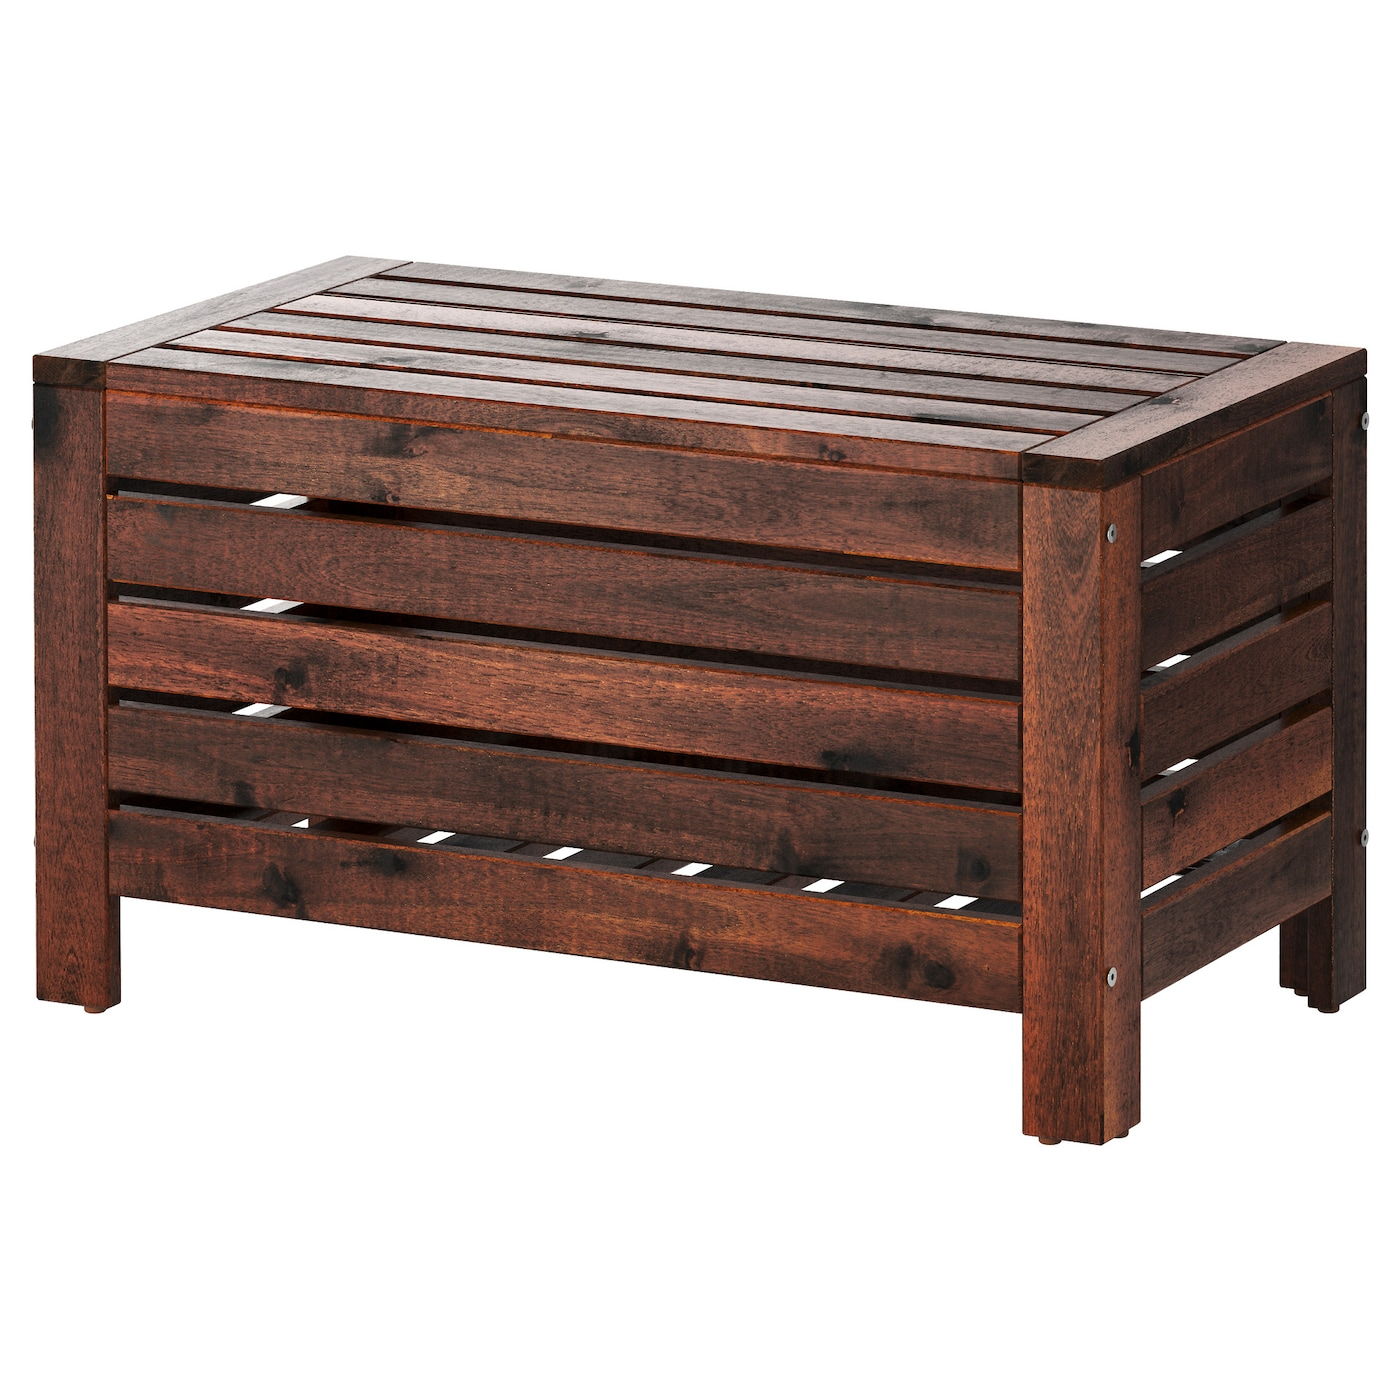 Pplar Storage Bench Outdoor Brown Stained 80x41 Cm Ikea